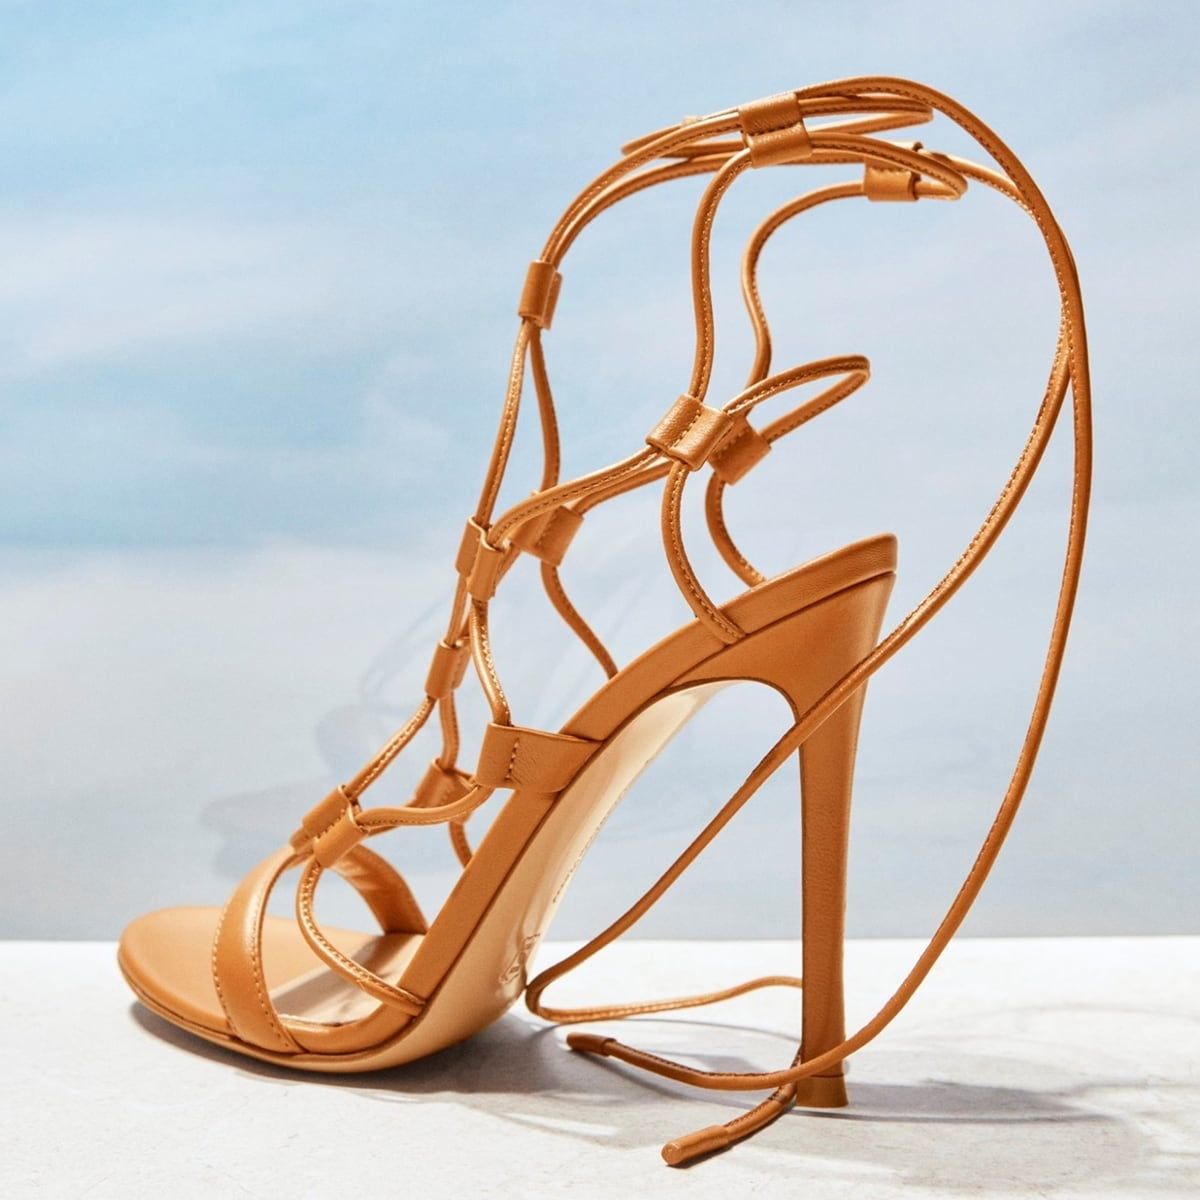 These summer sandals have been handmade in Italy from smooth leather and artfully braided into a lattice